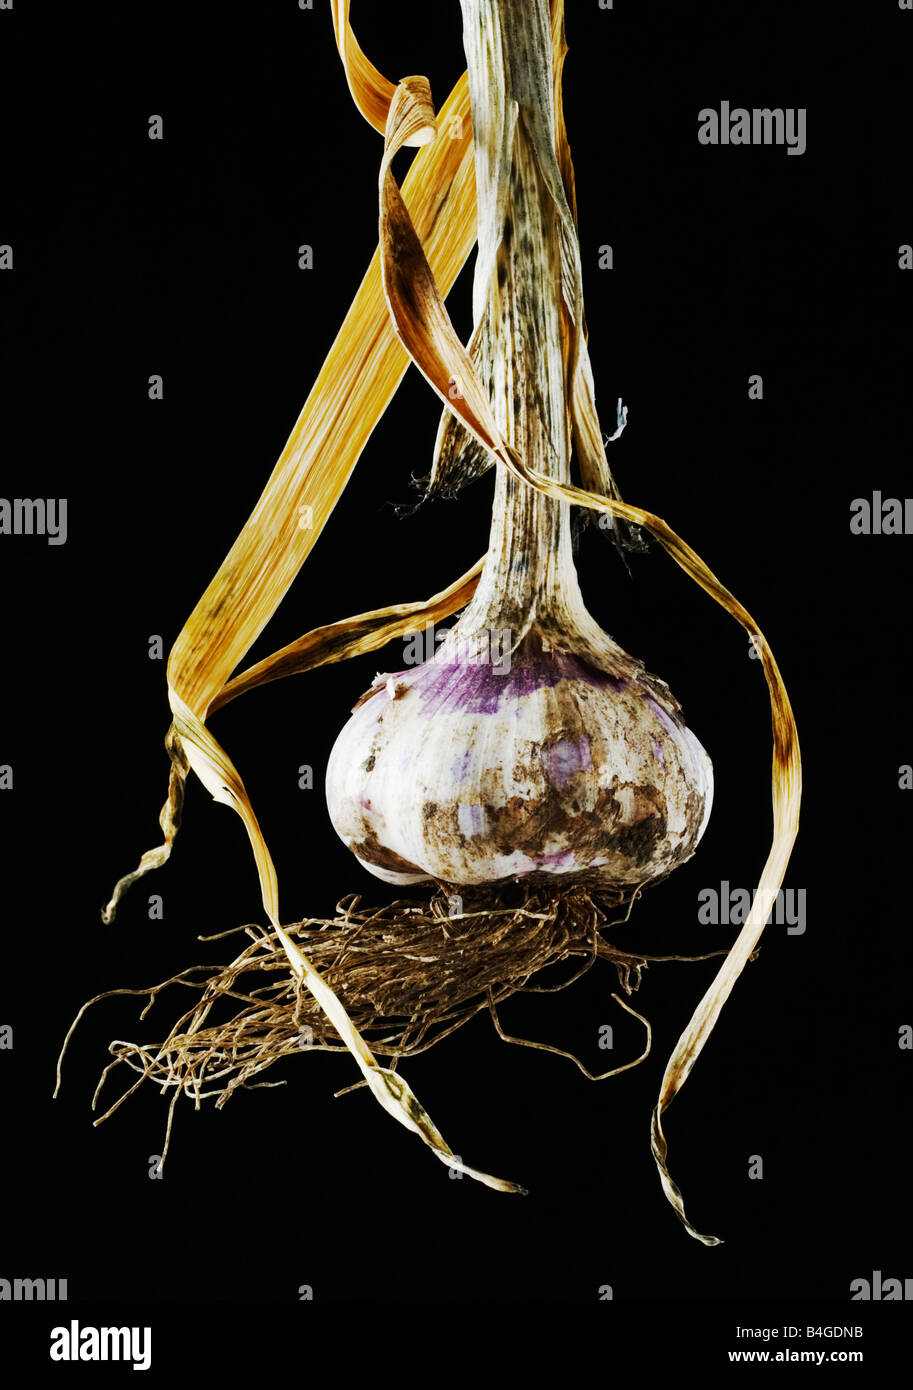 mature Garlic bulb Stock Photo